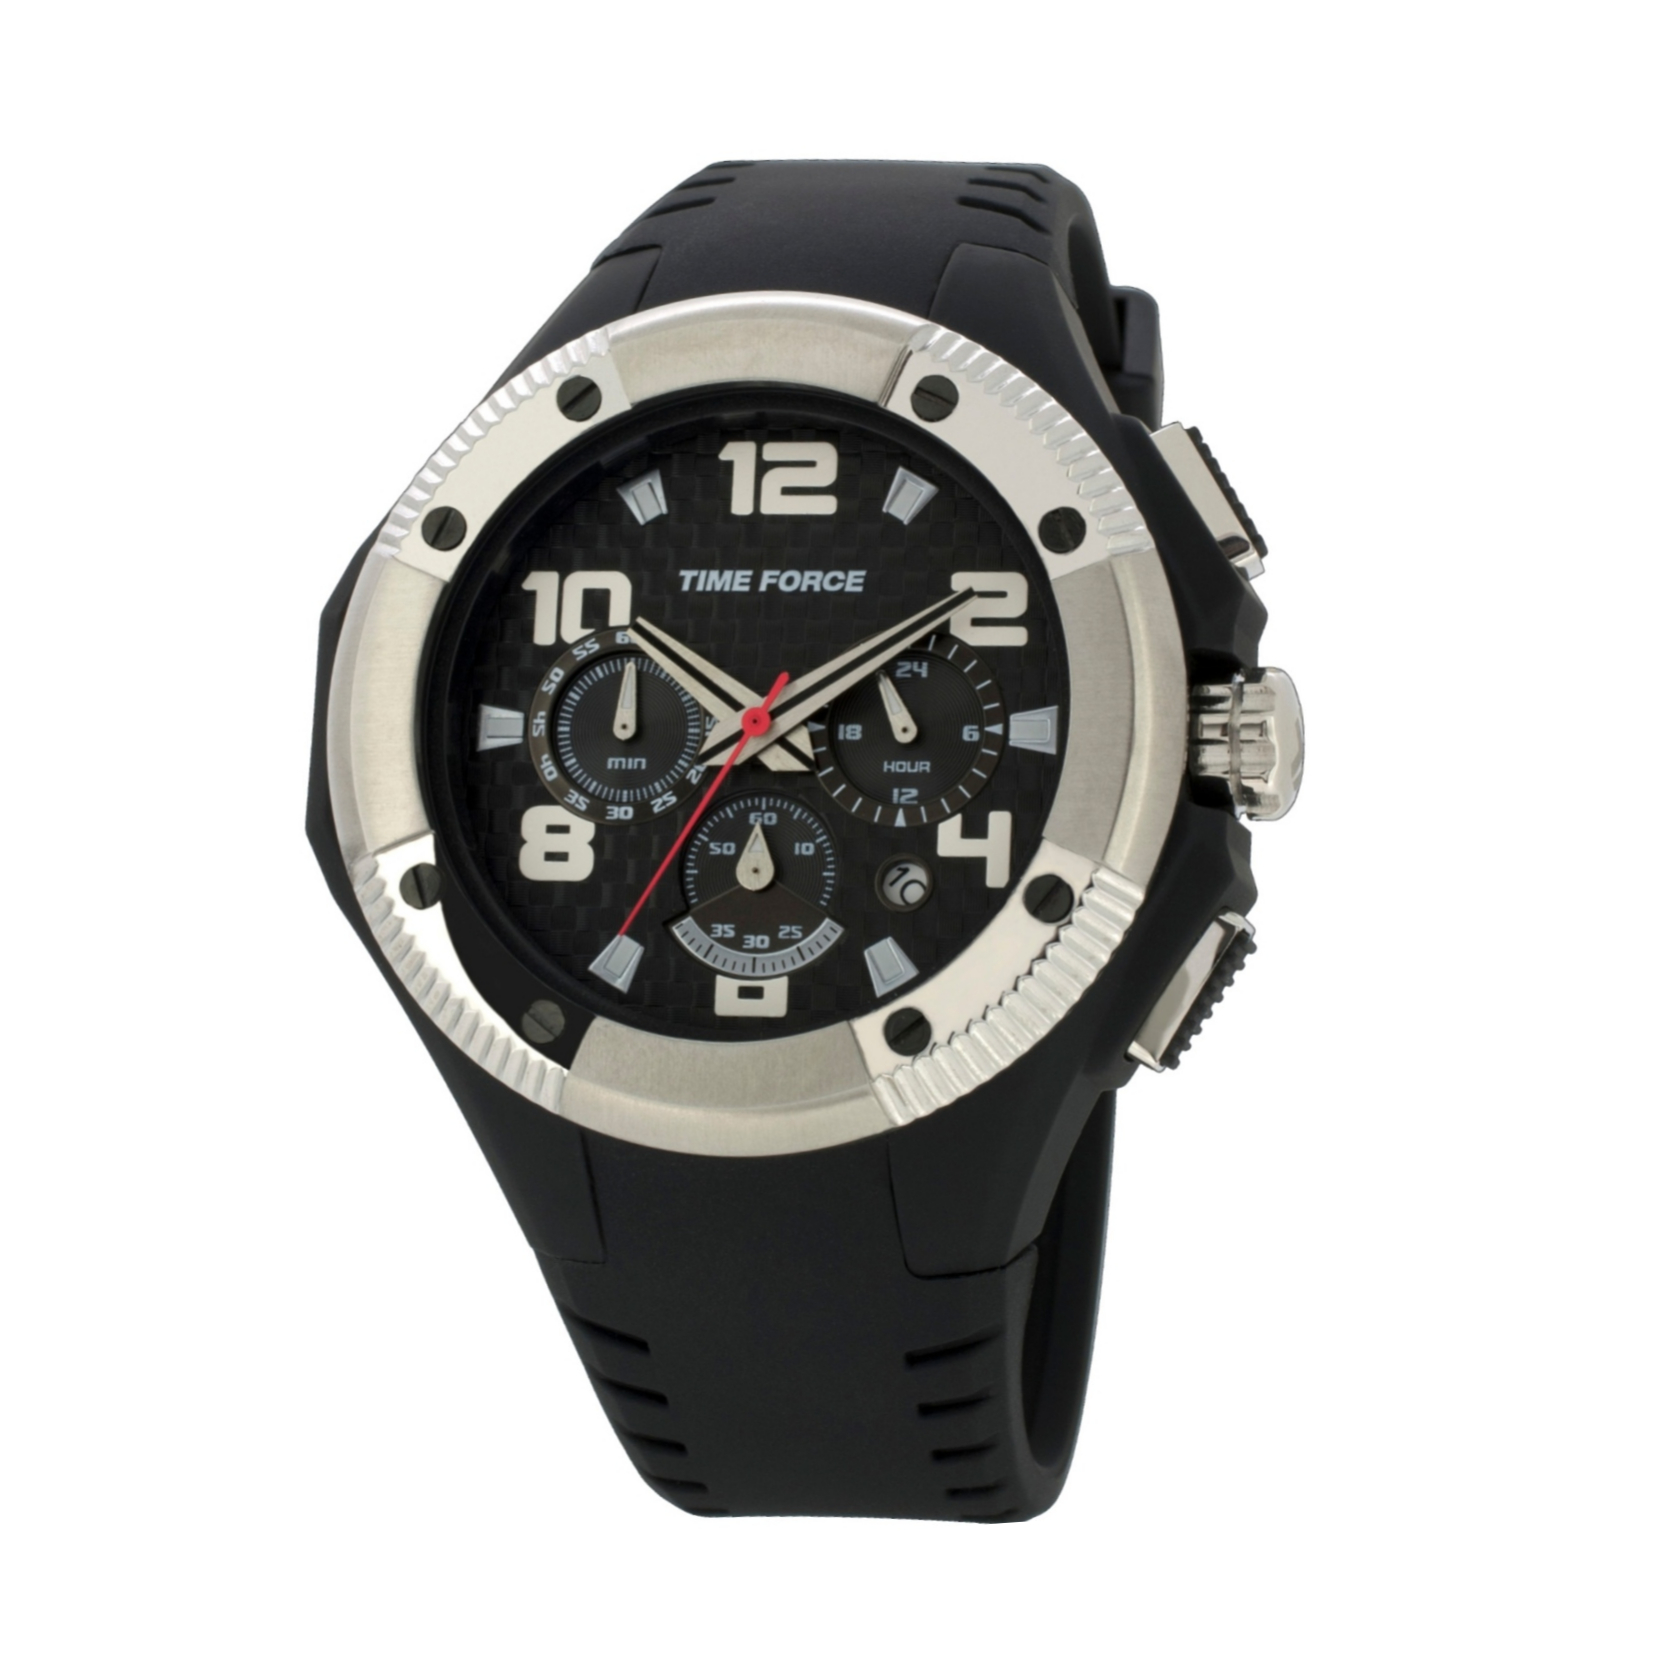 TF4151M01 TIME FORCE